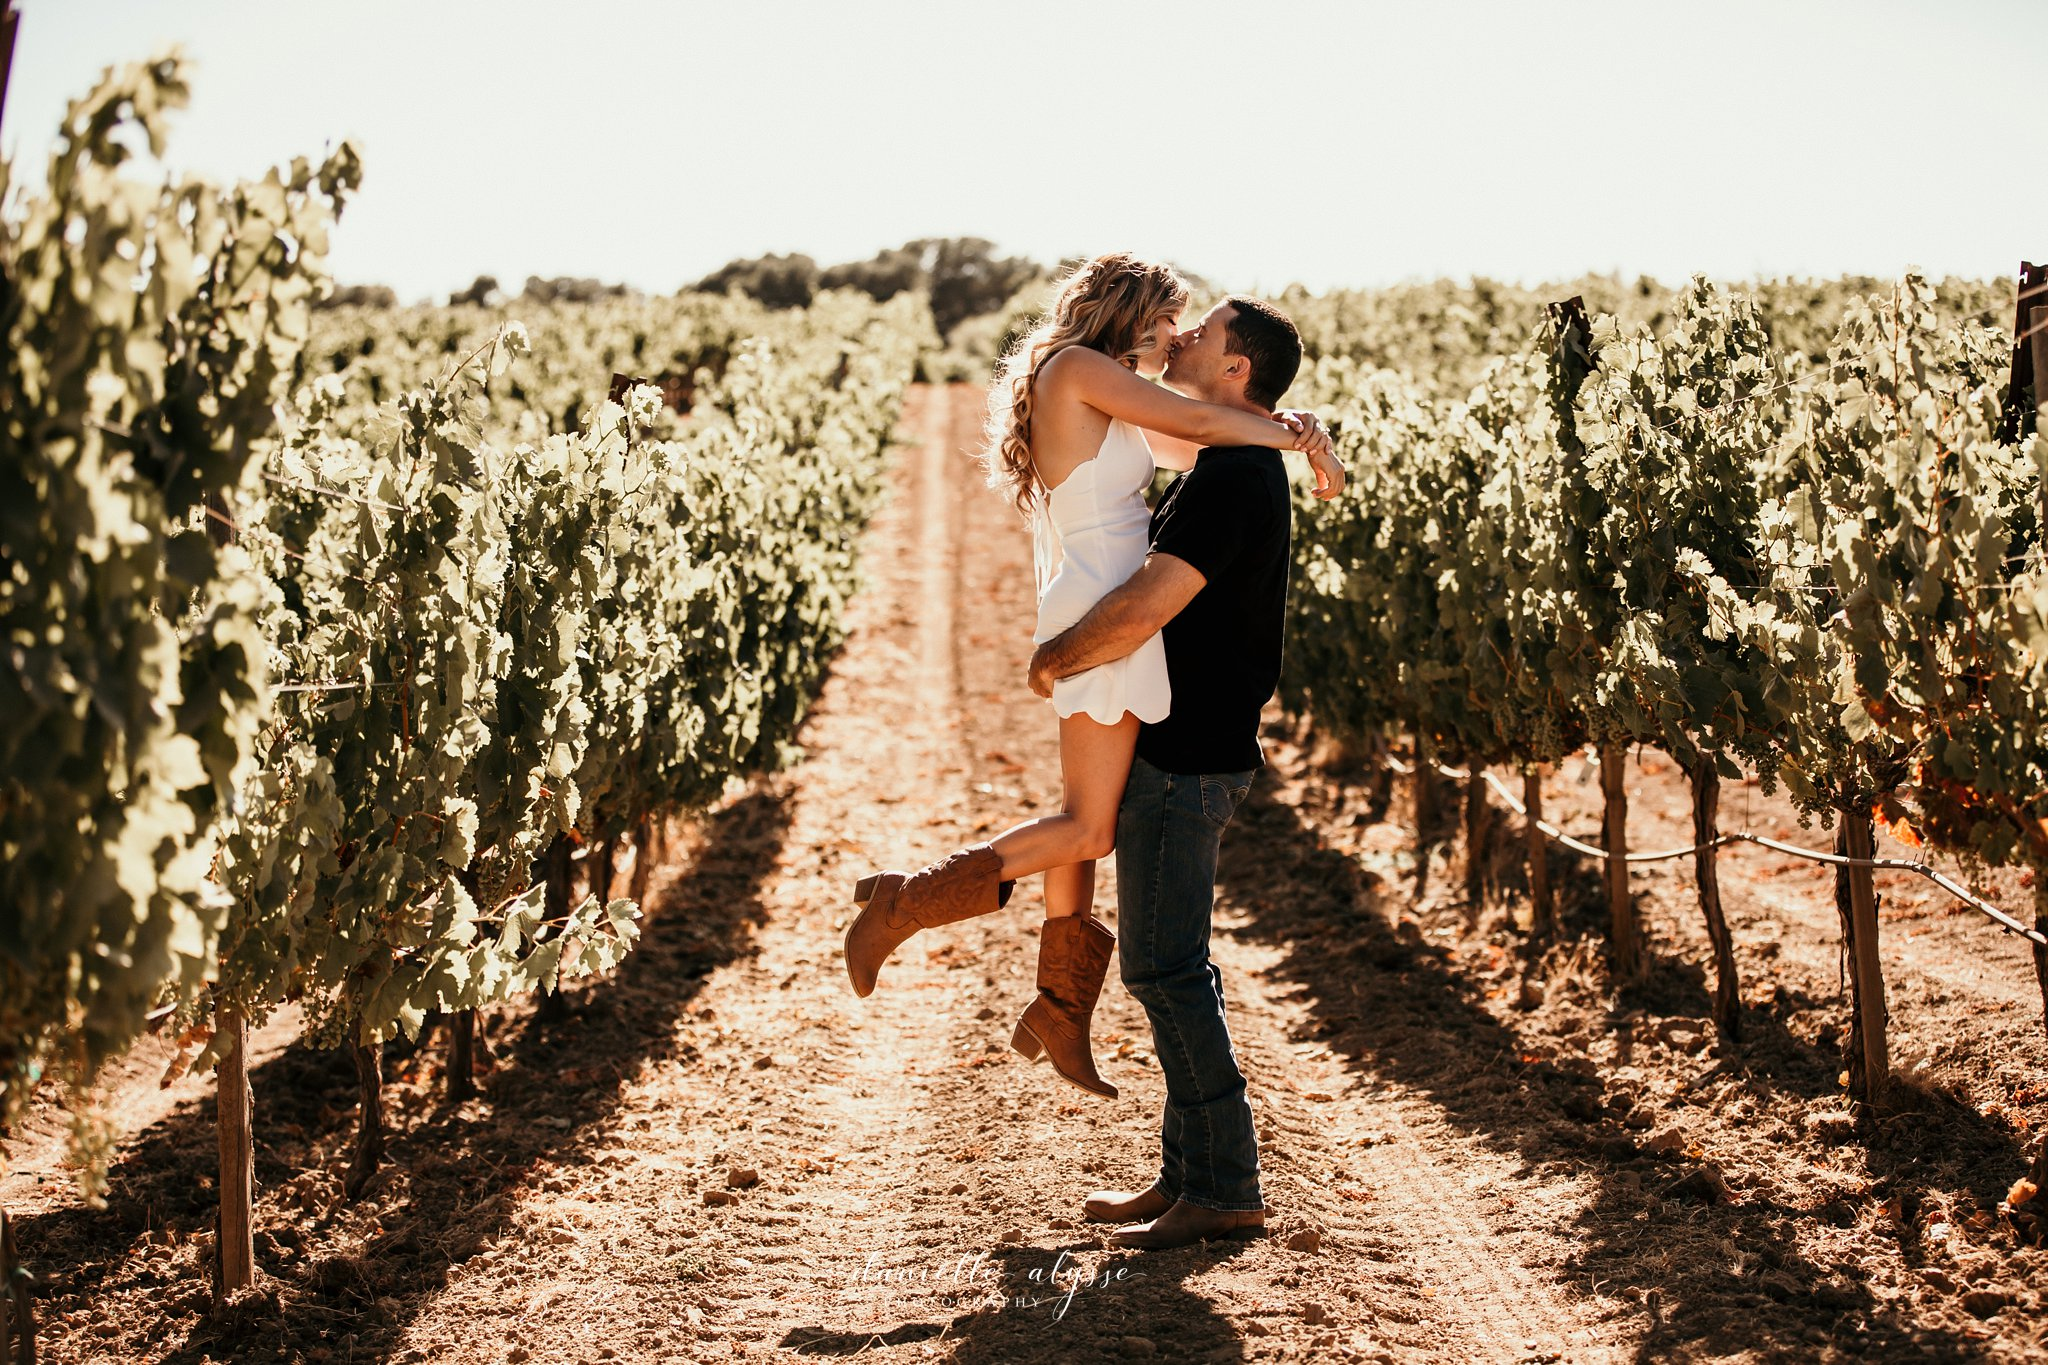 180804_engagement_katie_matt_dillon_beach_napa_danielle_alysse_photography_blog_18_WEB.jpg